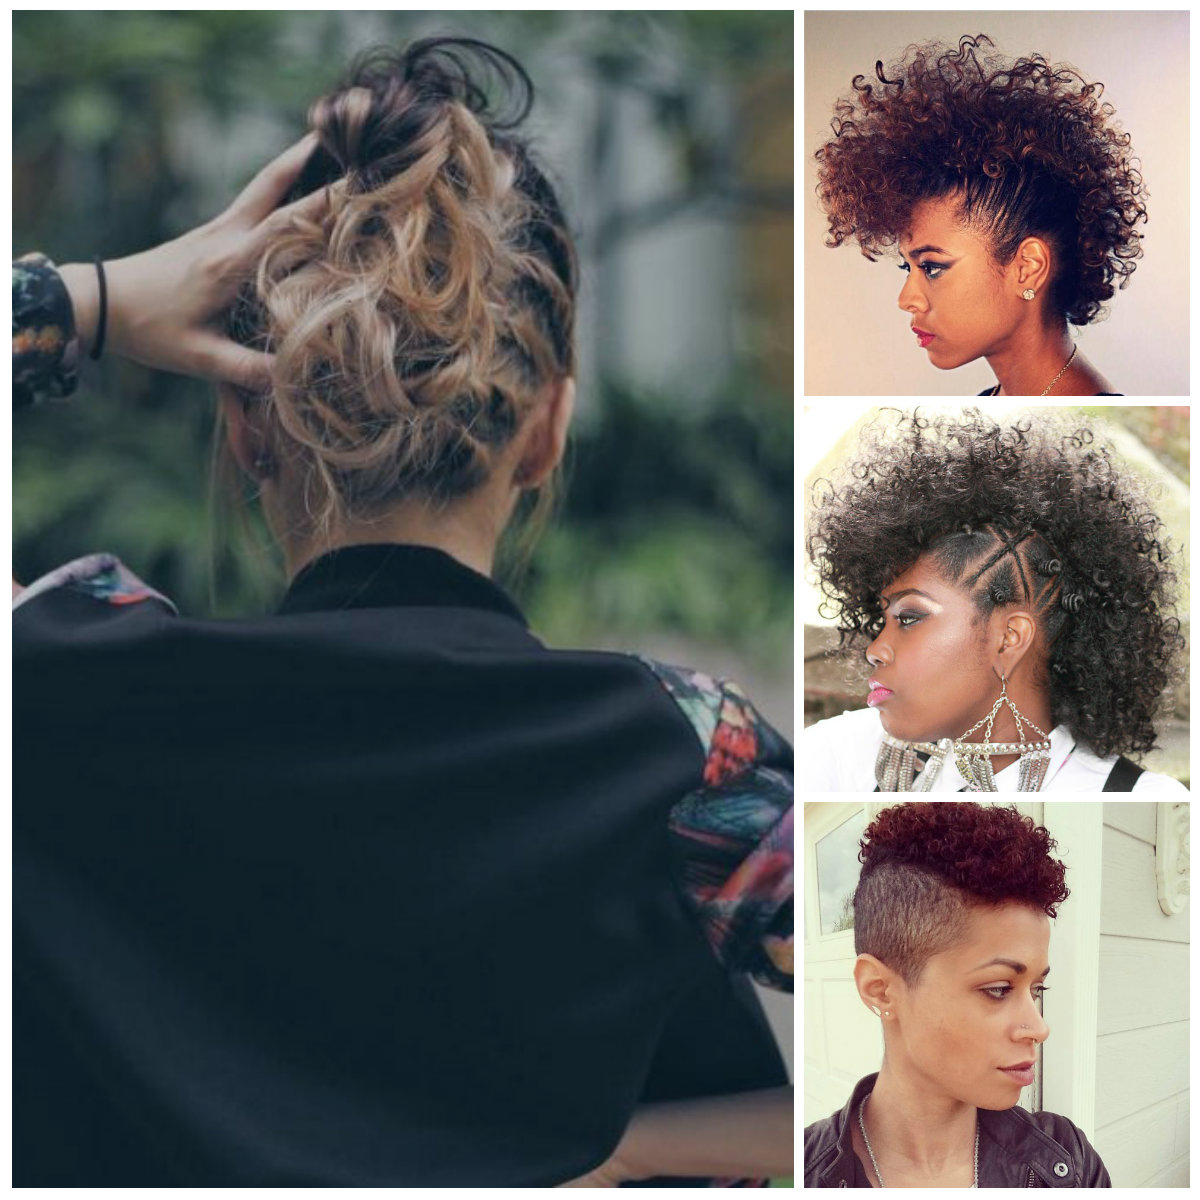 Famous Mohawk Haircuts On Curls With Parting Pertaining To Curly Mohawk Hairstyles For Women (View 7 of 20)